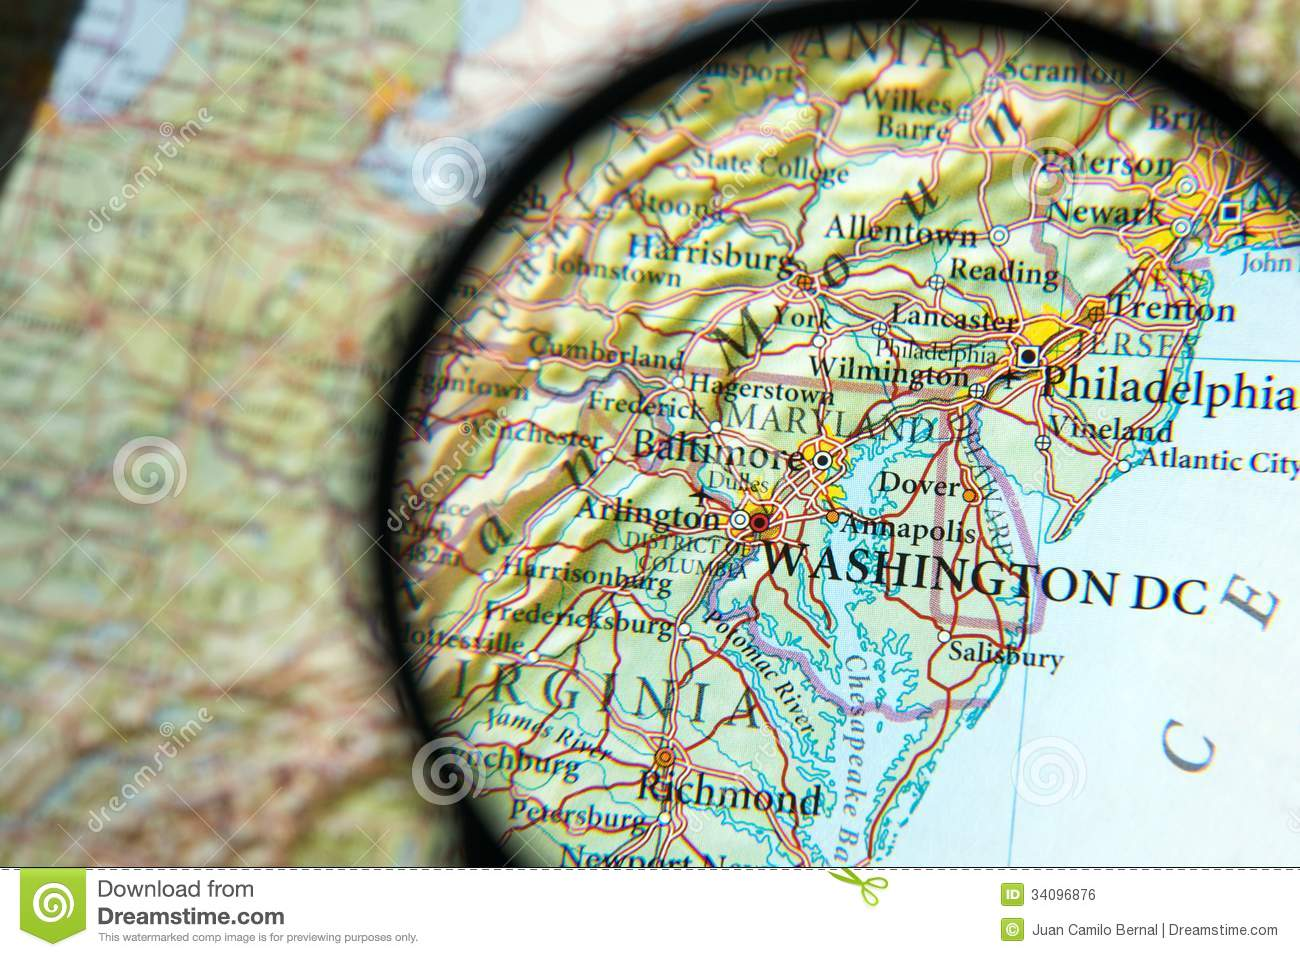 Business plan writers washington dc